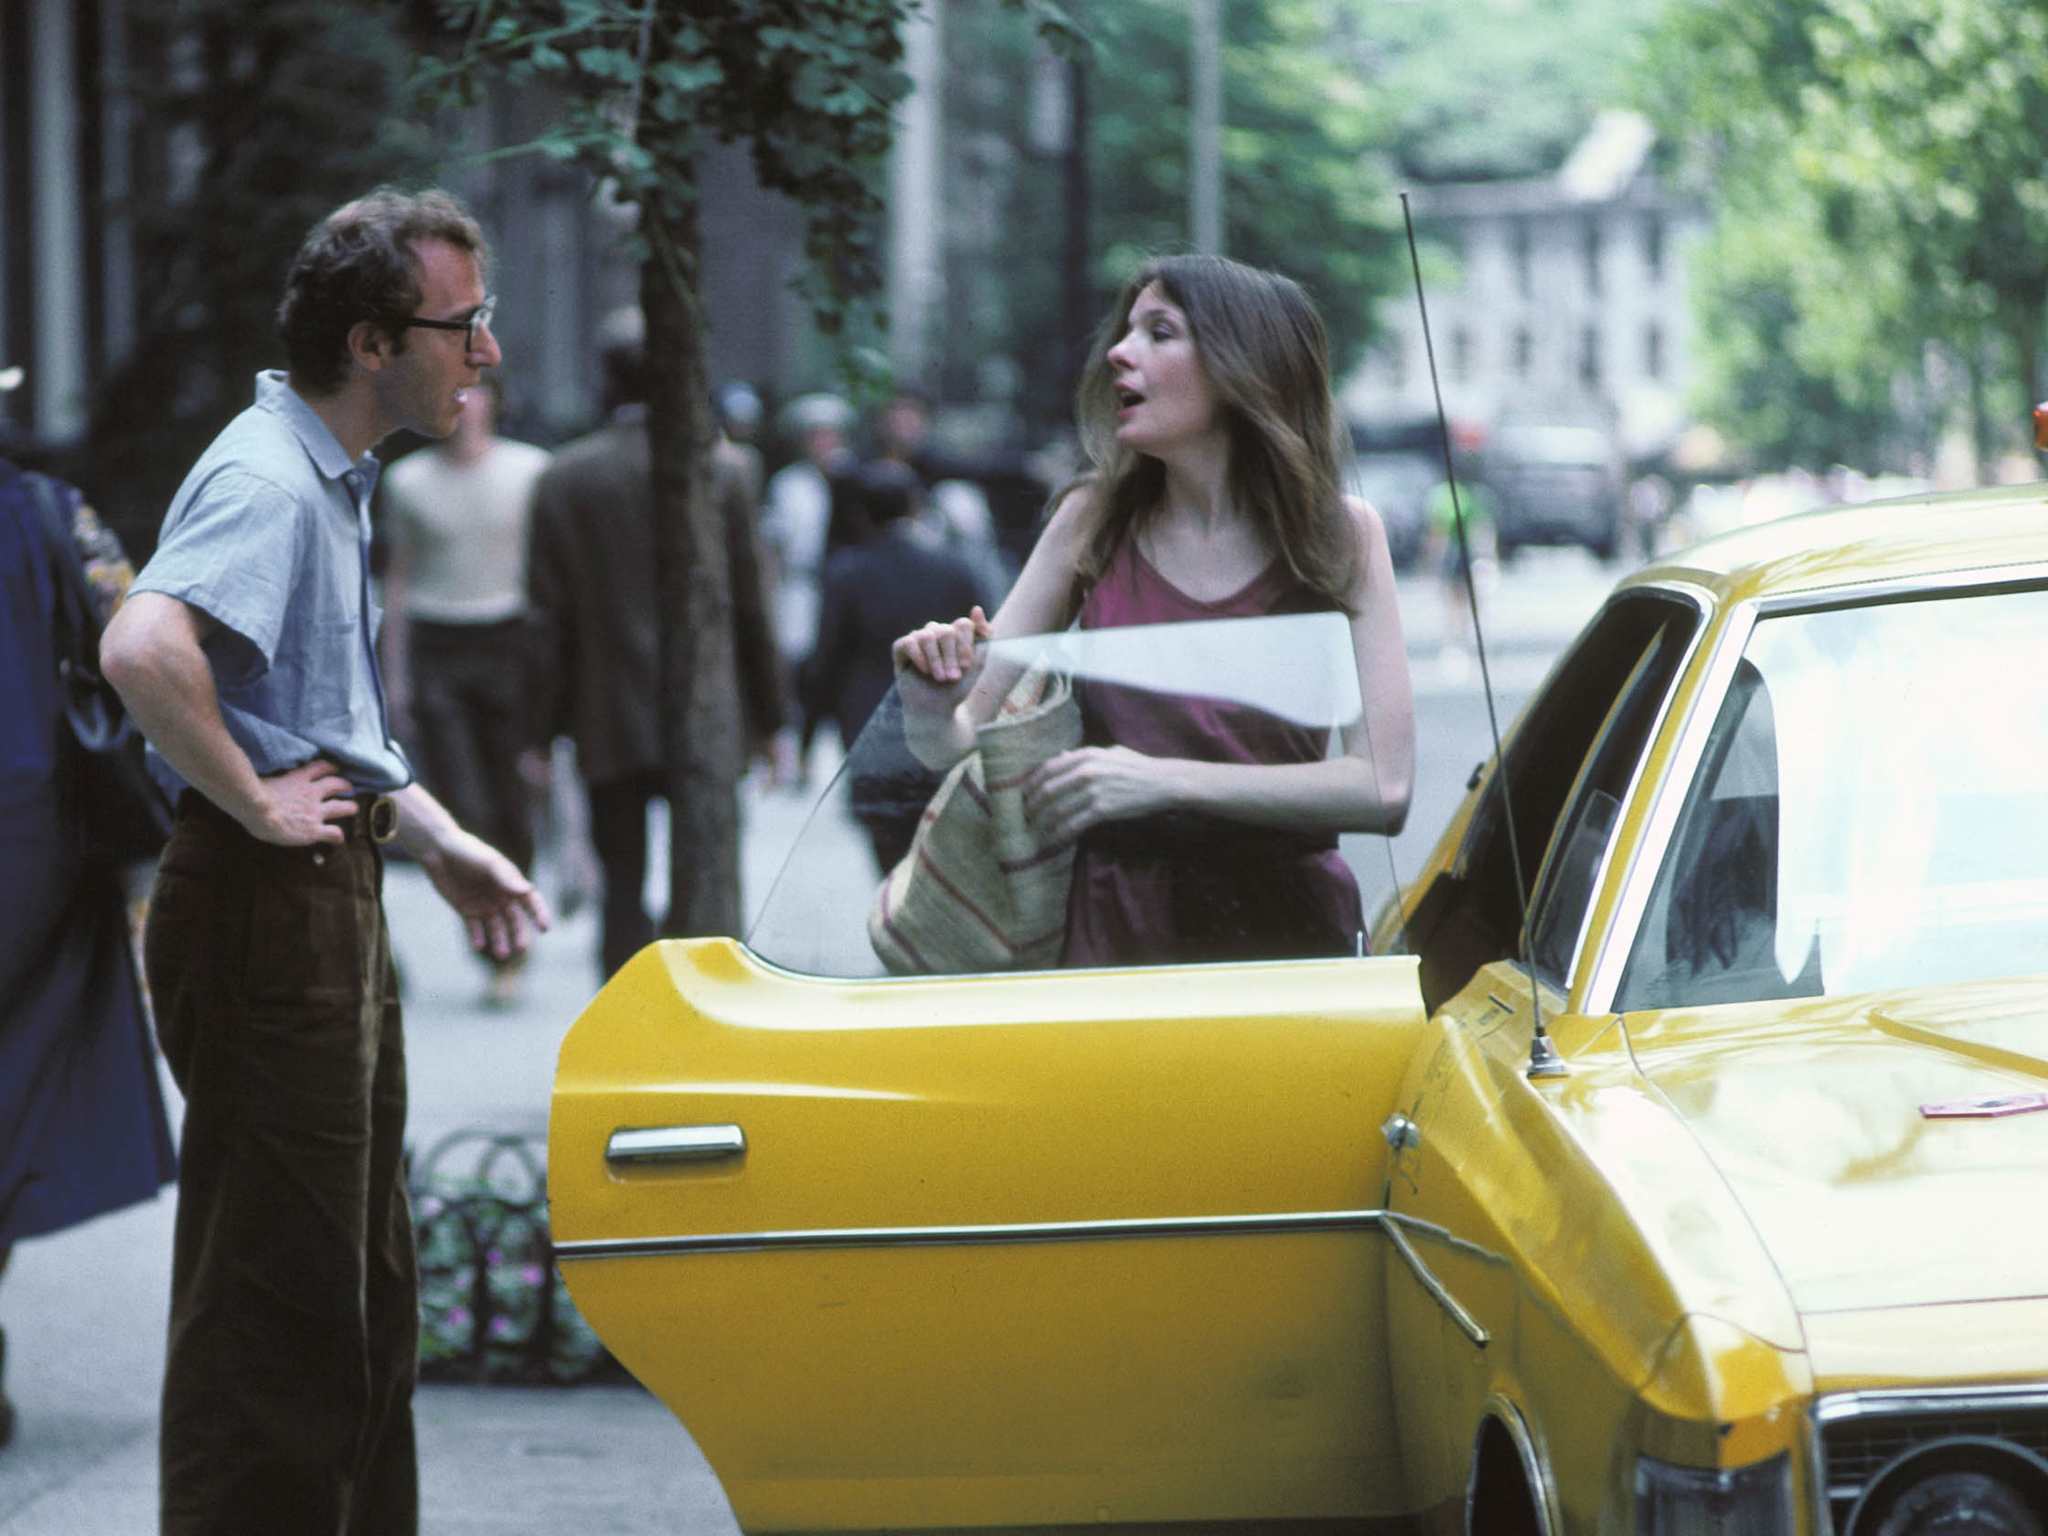 21 things we learned about New York from the movies